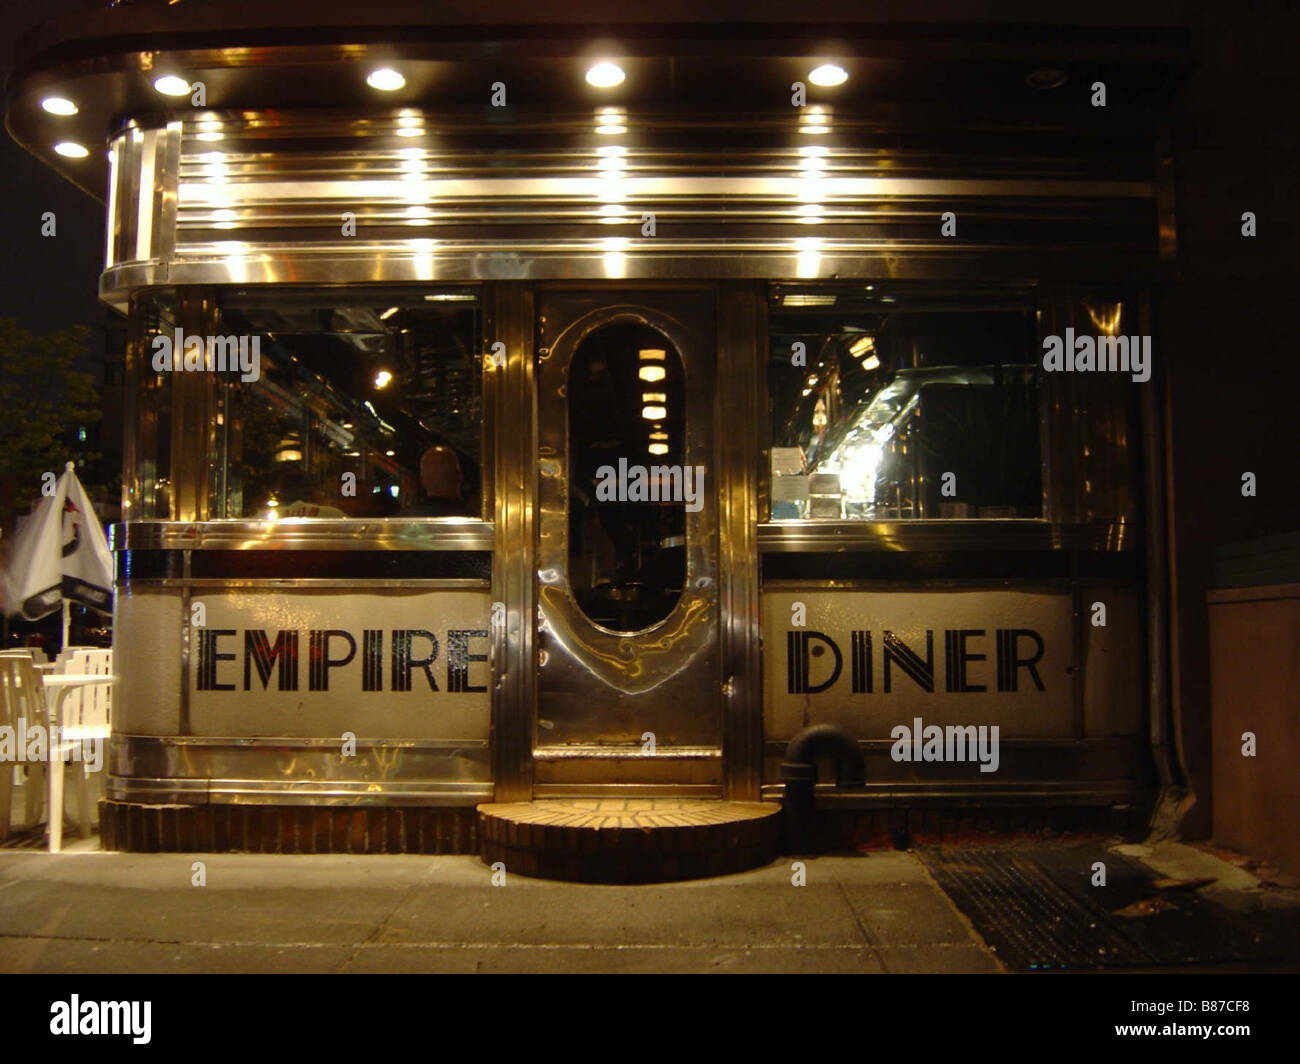 Art Deco Restaurant Empire Diner Stockfotos & Art Deco Restaurant ...